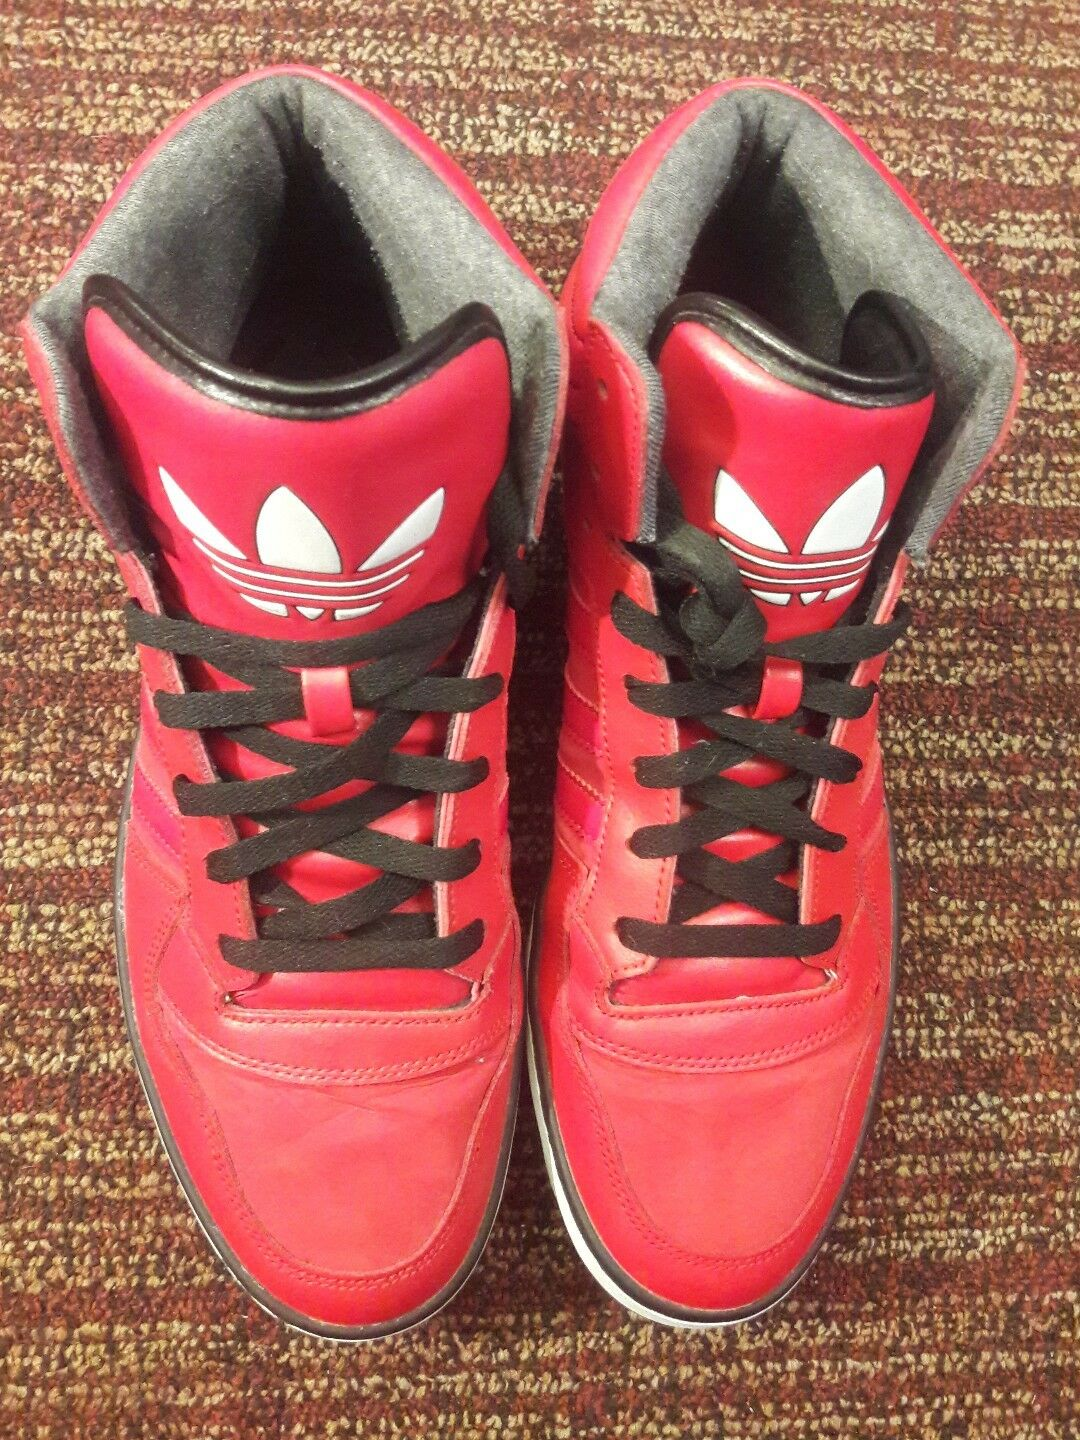 ADIDAS POST PLAYER VULC VULCAN US Originals MENS Light Scarlet Price reduction Cheap women's shoes women's shoes